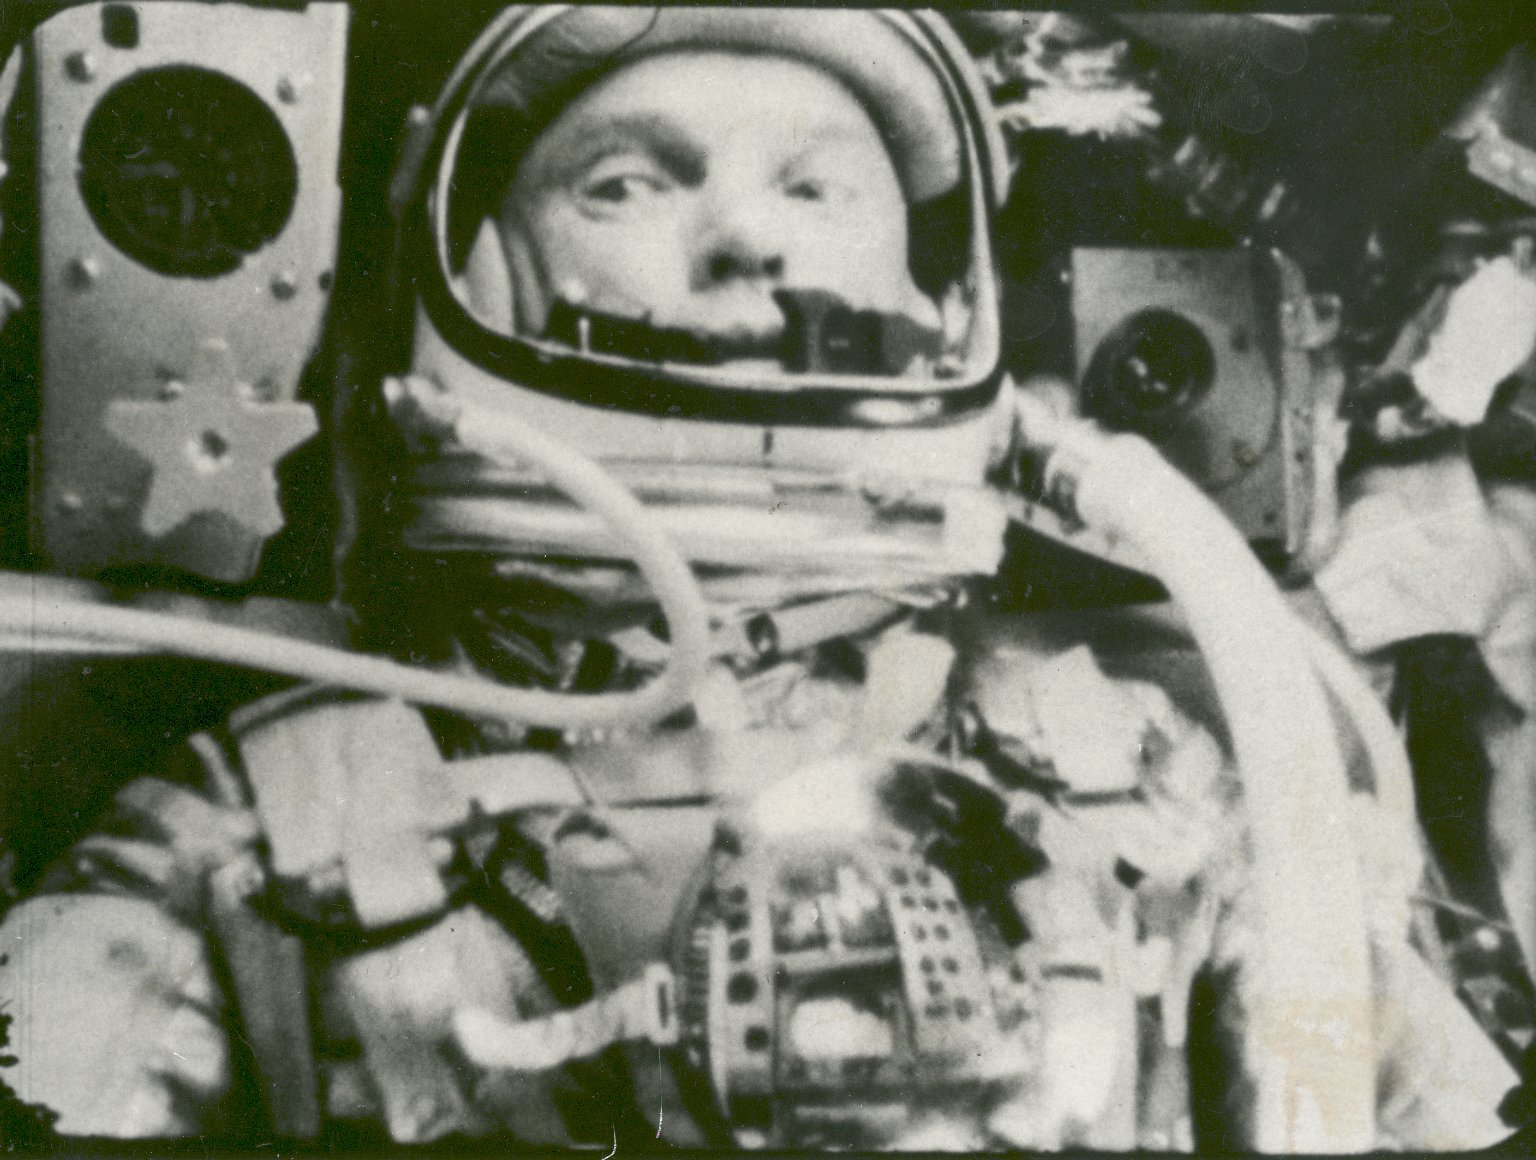 Figure 1 - John Glenn in orbit on the Friendship 7 Feb. 20, 1962. photographed automatic sequence motion picture camera. NASA Public domain. during